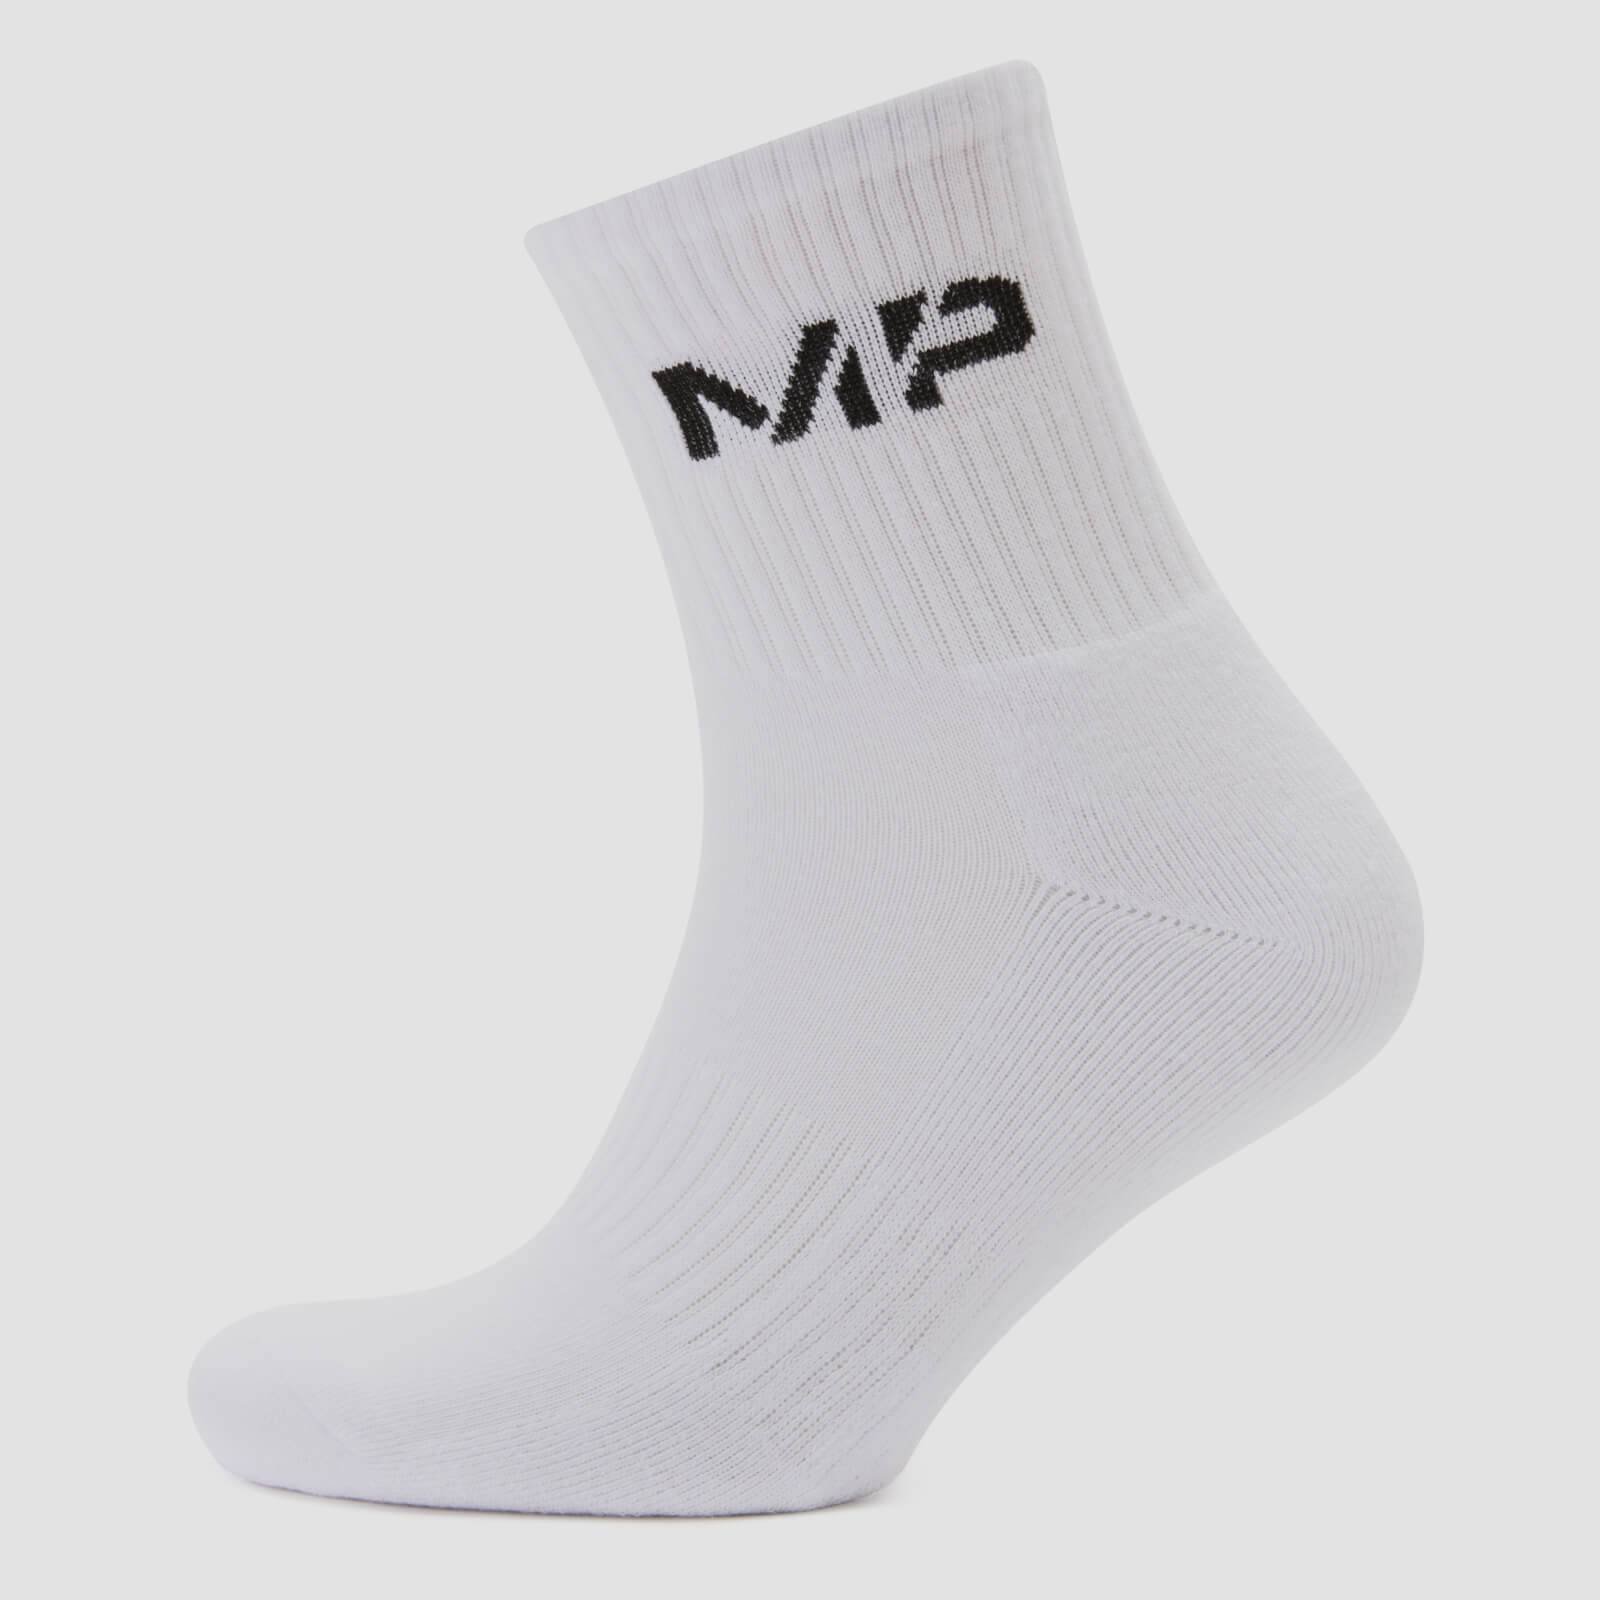 Myprotein MP Men's Core Crew Socks (2 Pack) - White - UK 6-8